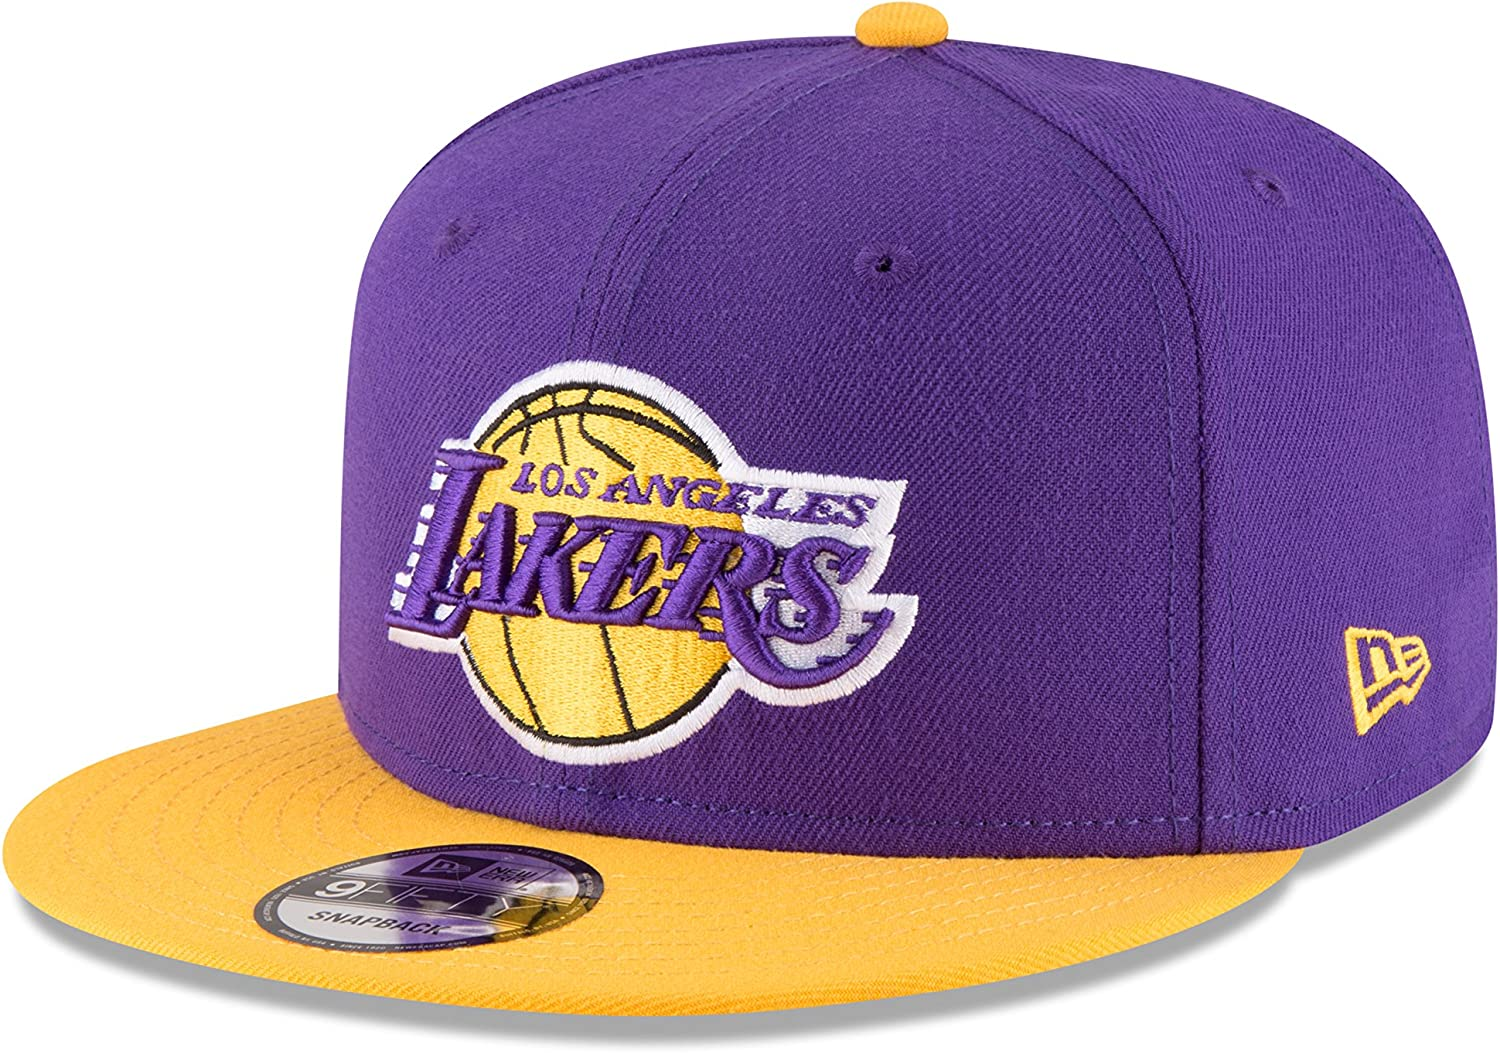 New Era NBA 9Fifty 2Tone Challenge the lowest price of Japan ☆ Cap Snapback Max 88% OFF